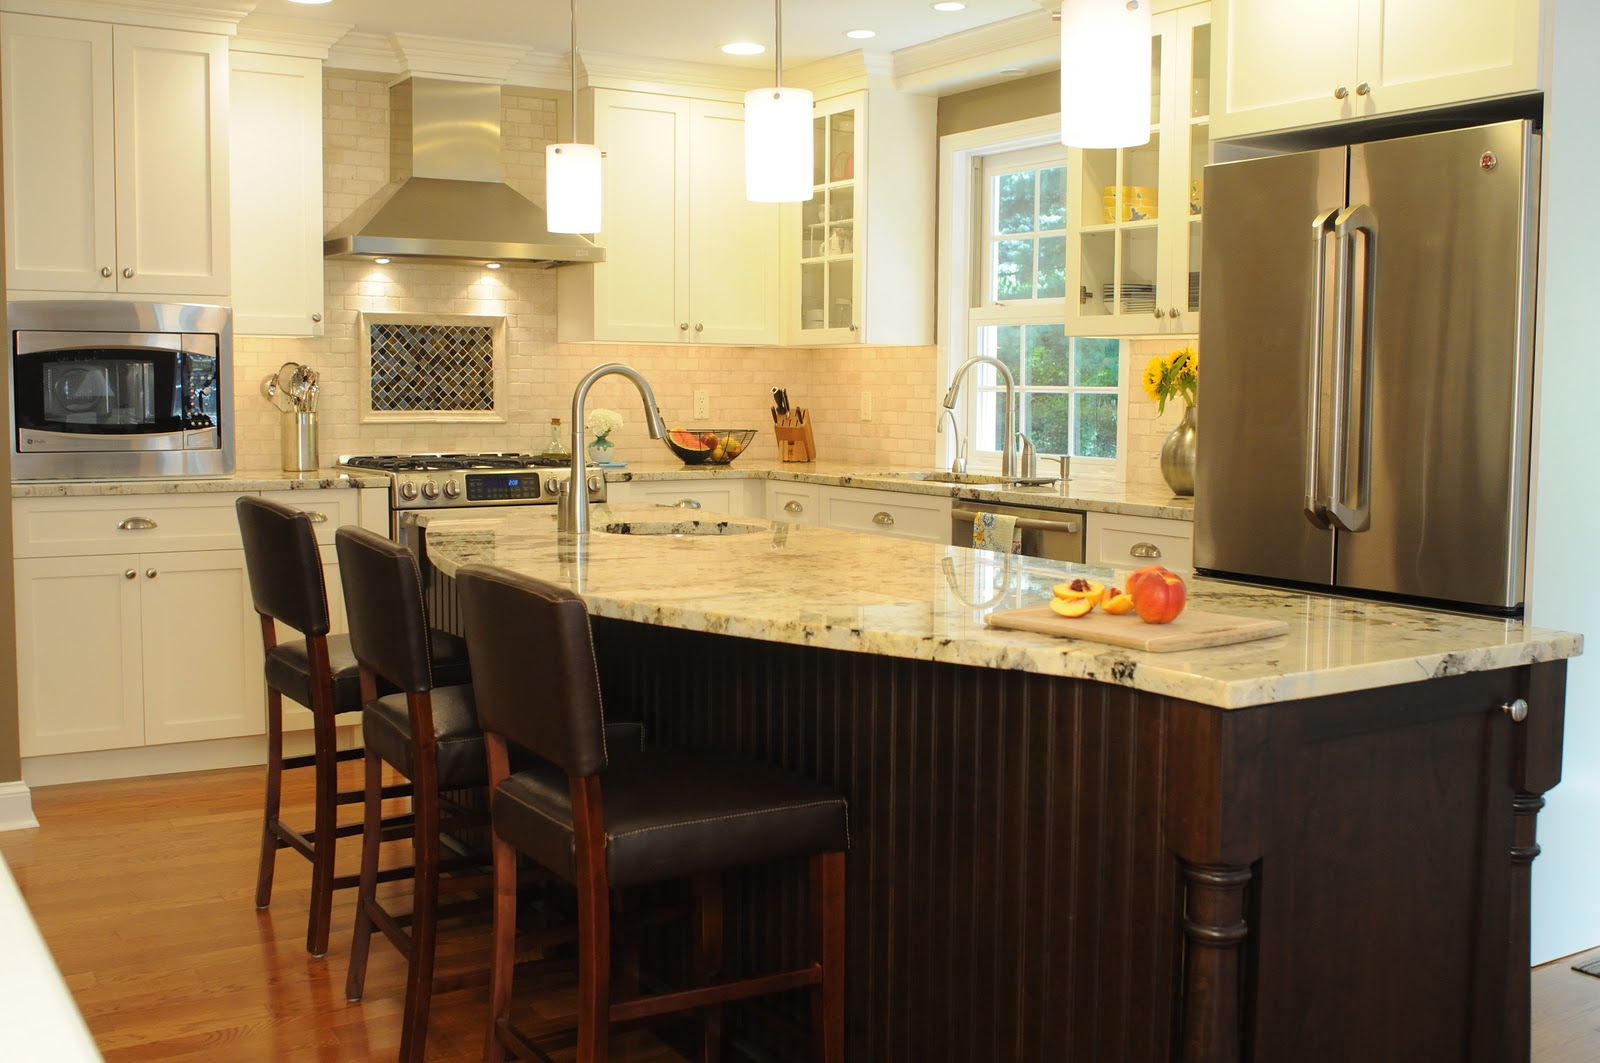 Indian kitchen design blog - A Clean Crisp Kitchen Redo Becomes The Heart Of The Home